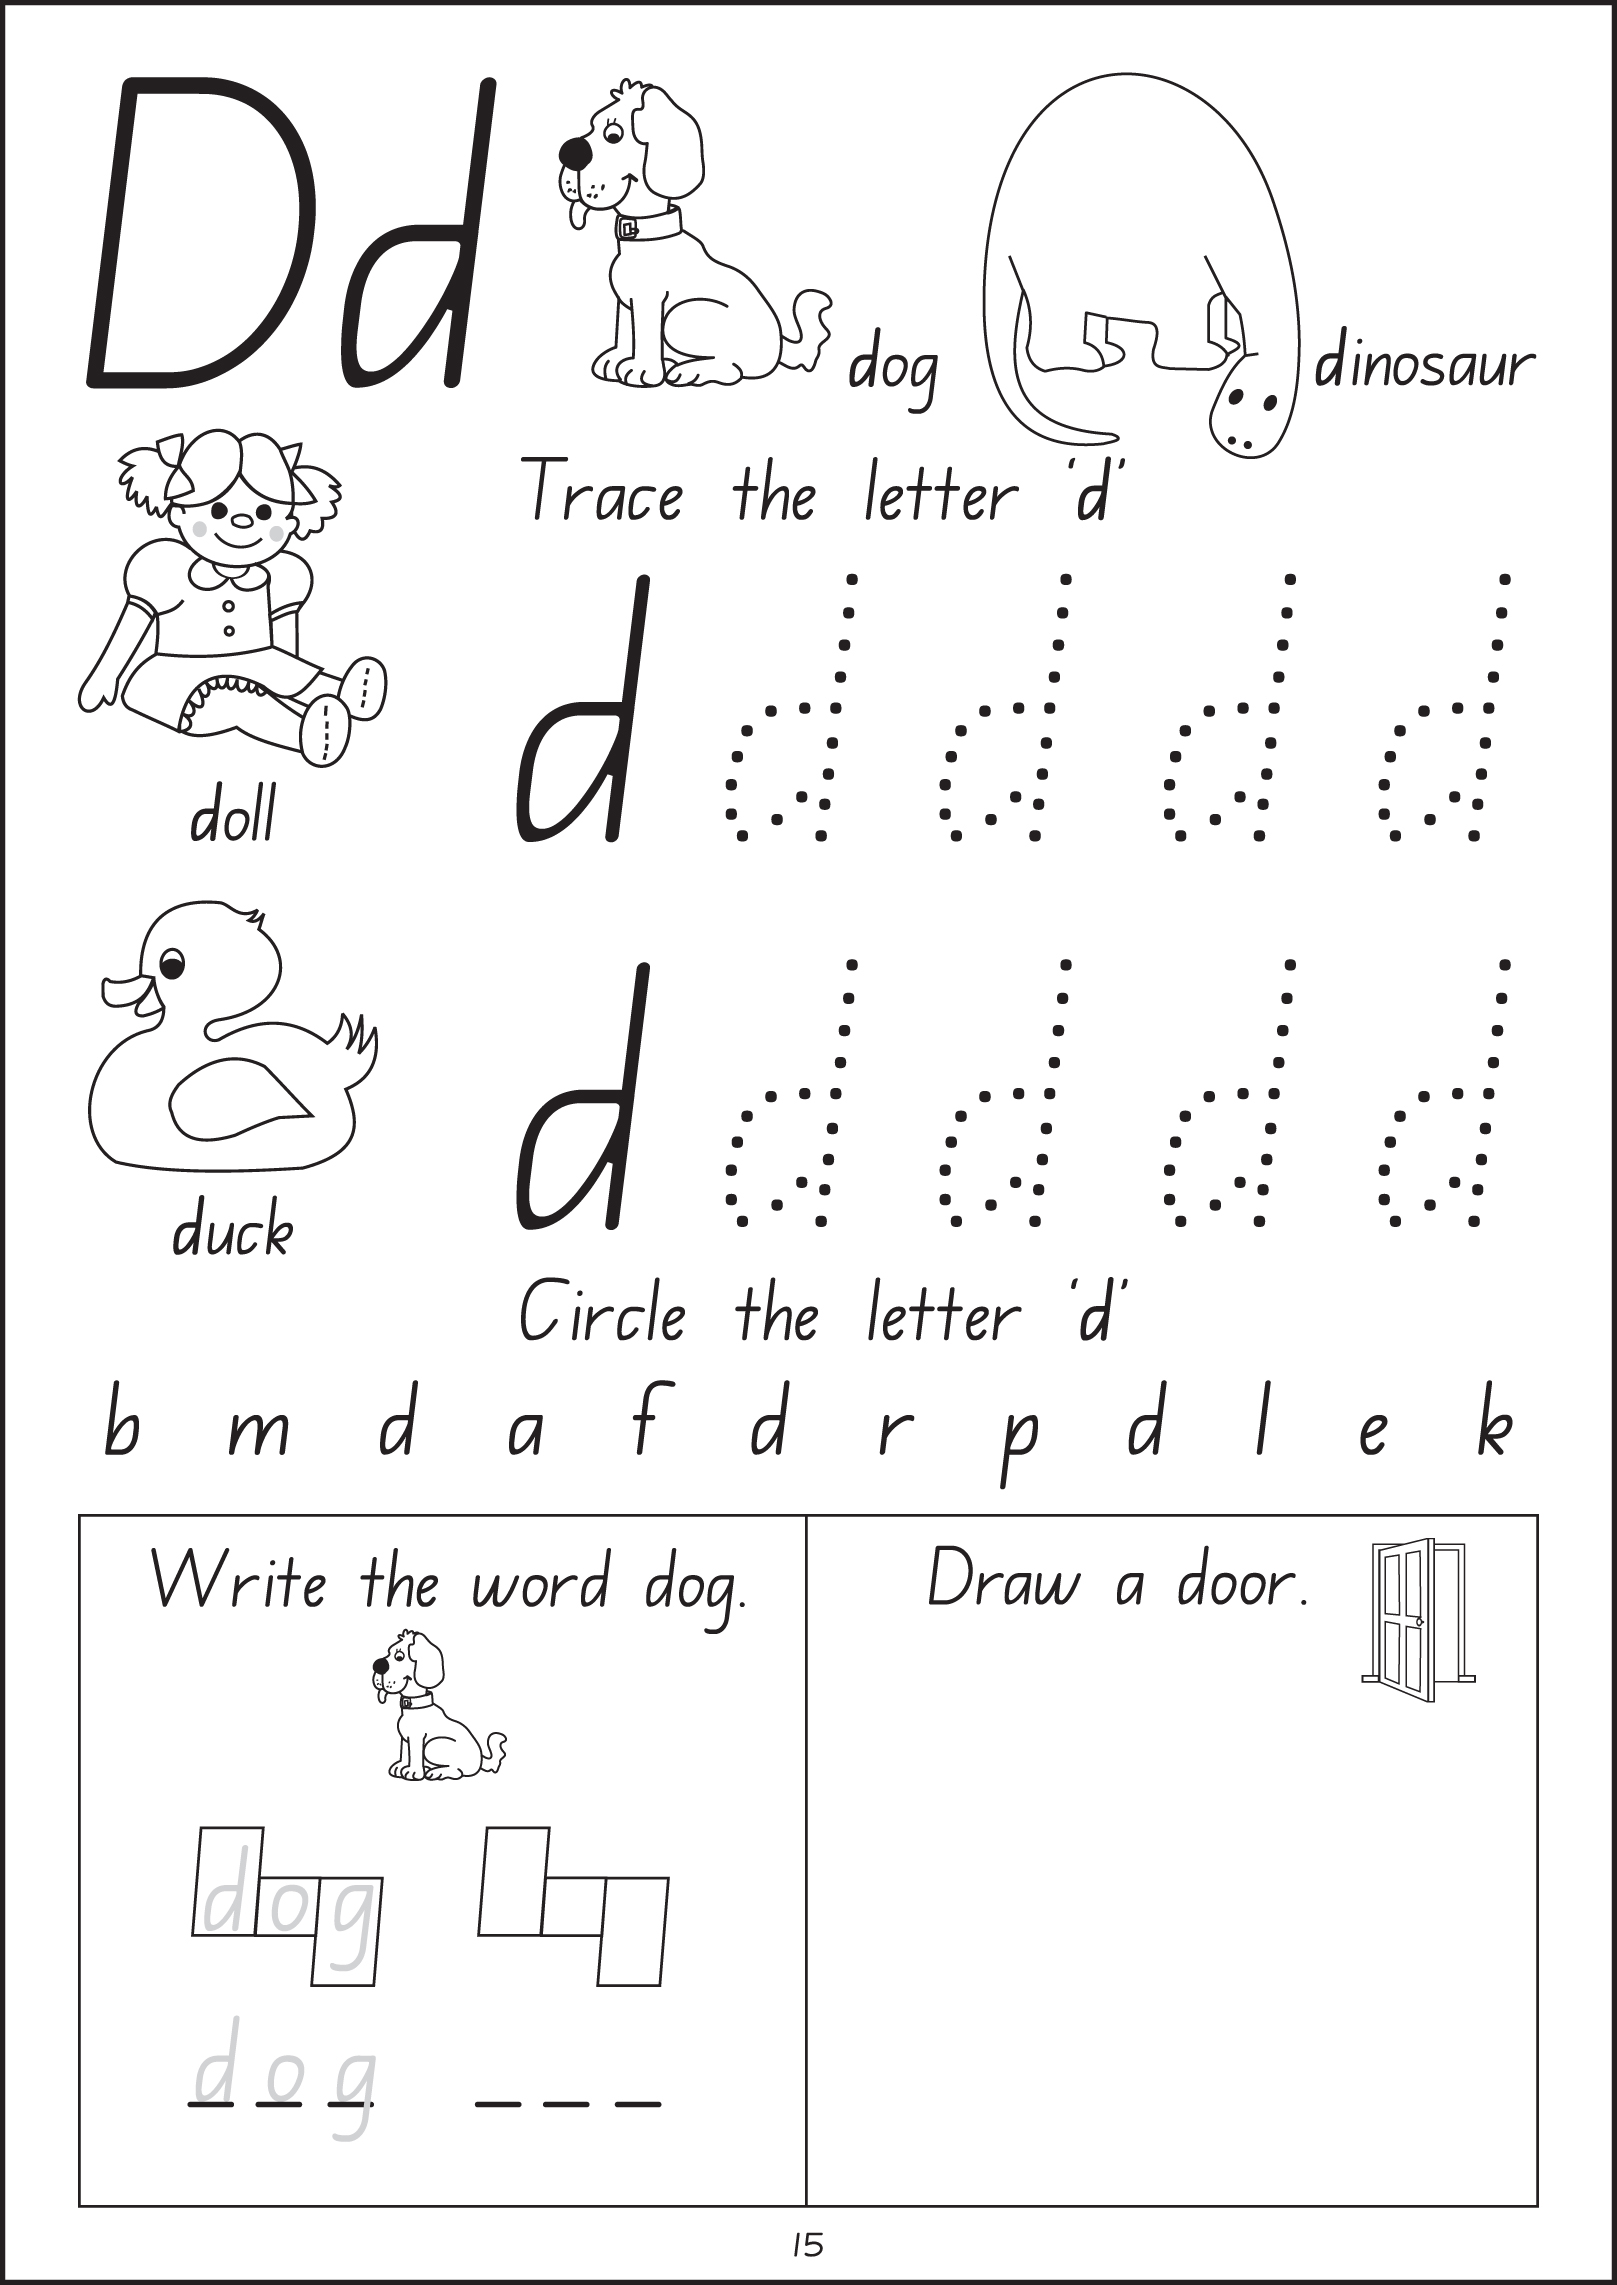 More Than Free Learning Packs For Preschool Kindergarten Smaller This Reading Mama moreover Picture Matching Thumbnail Ea E D B B D B B C F X likewise Uppercase And Lowercase Alphabet together with Fb F B C Fbbb E Dae A D additionally Answersheet. on alphabet matching worksheets for pre k